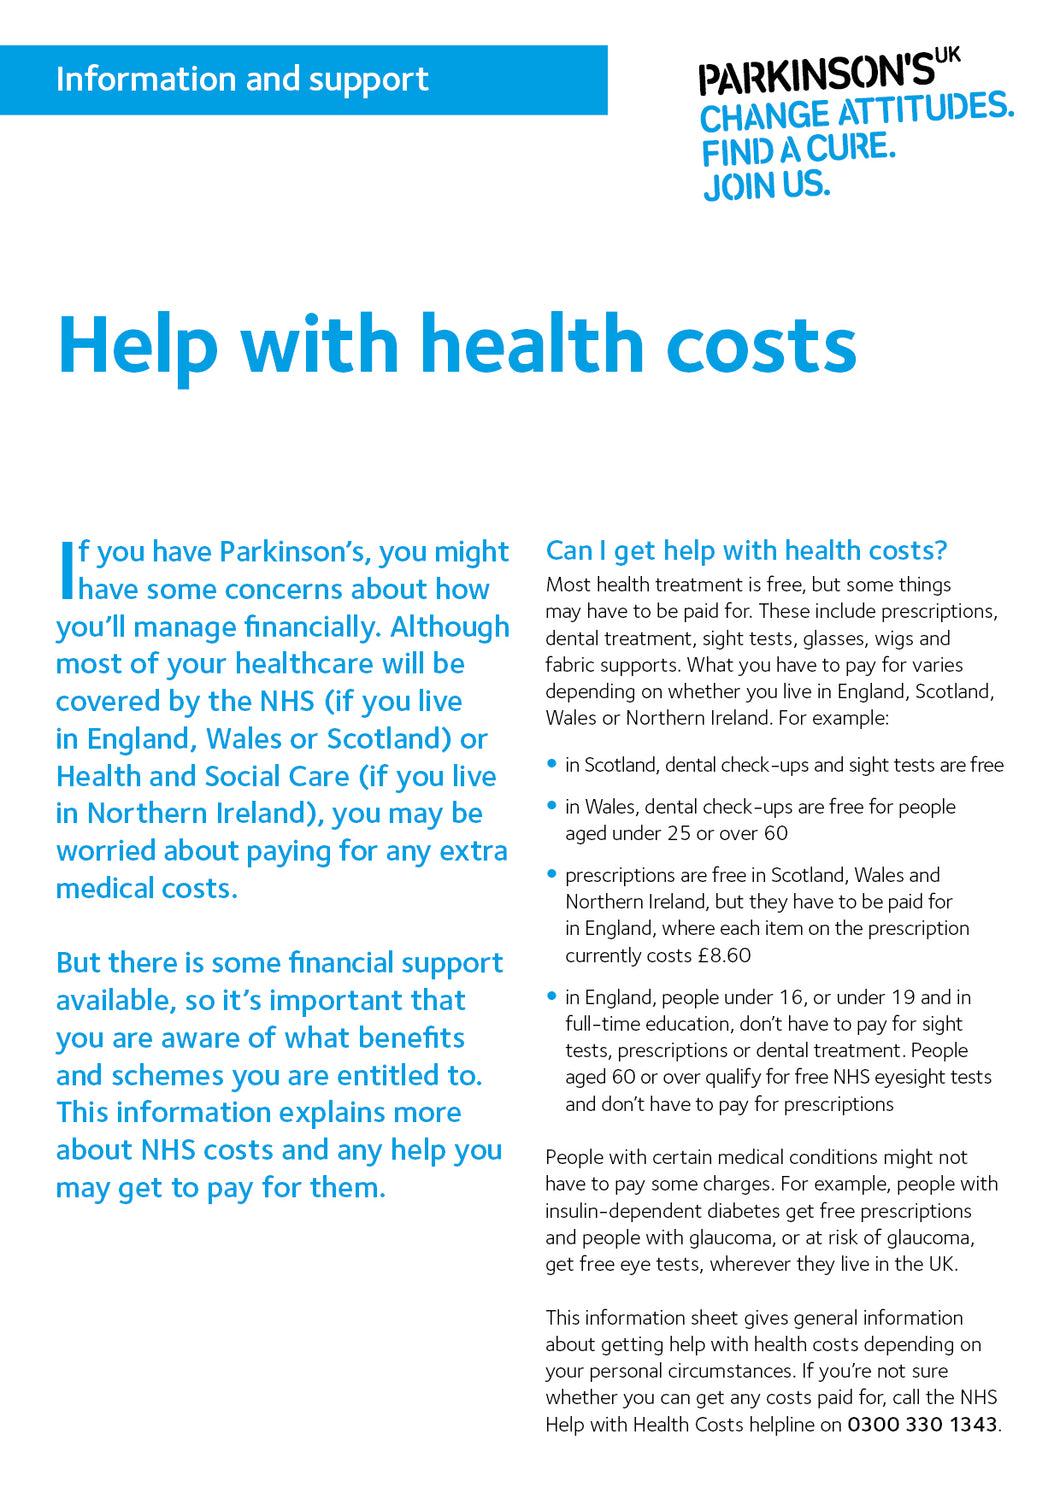 Help with health costs - Parkinson's shop